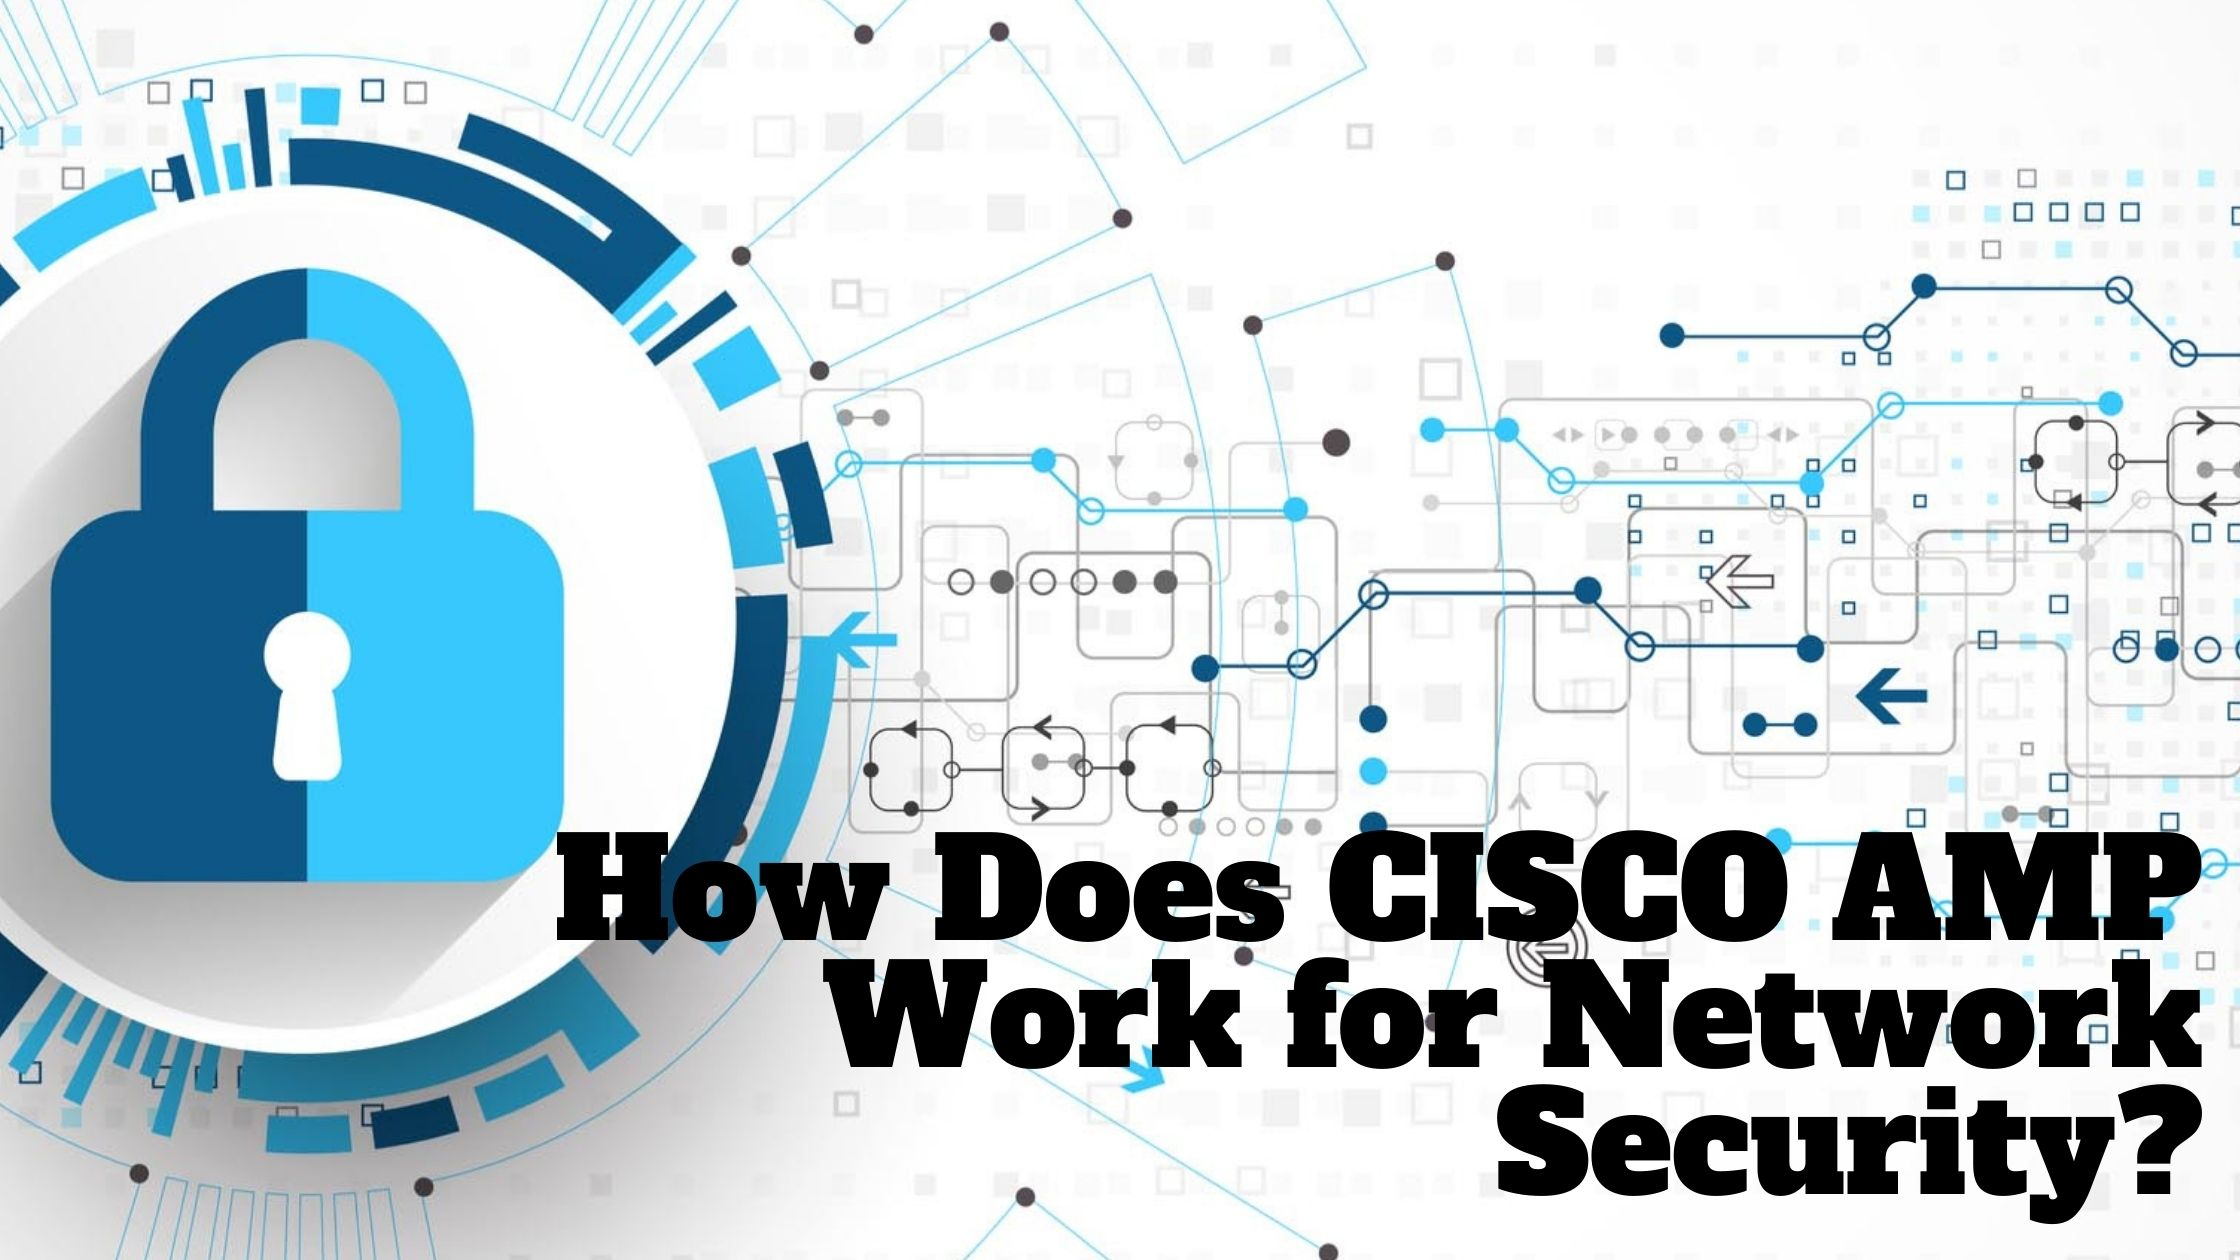 How Does CISCO AMP Work for Network Security?